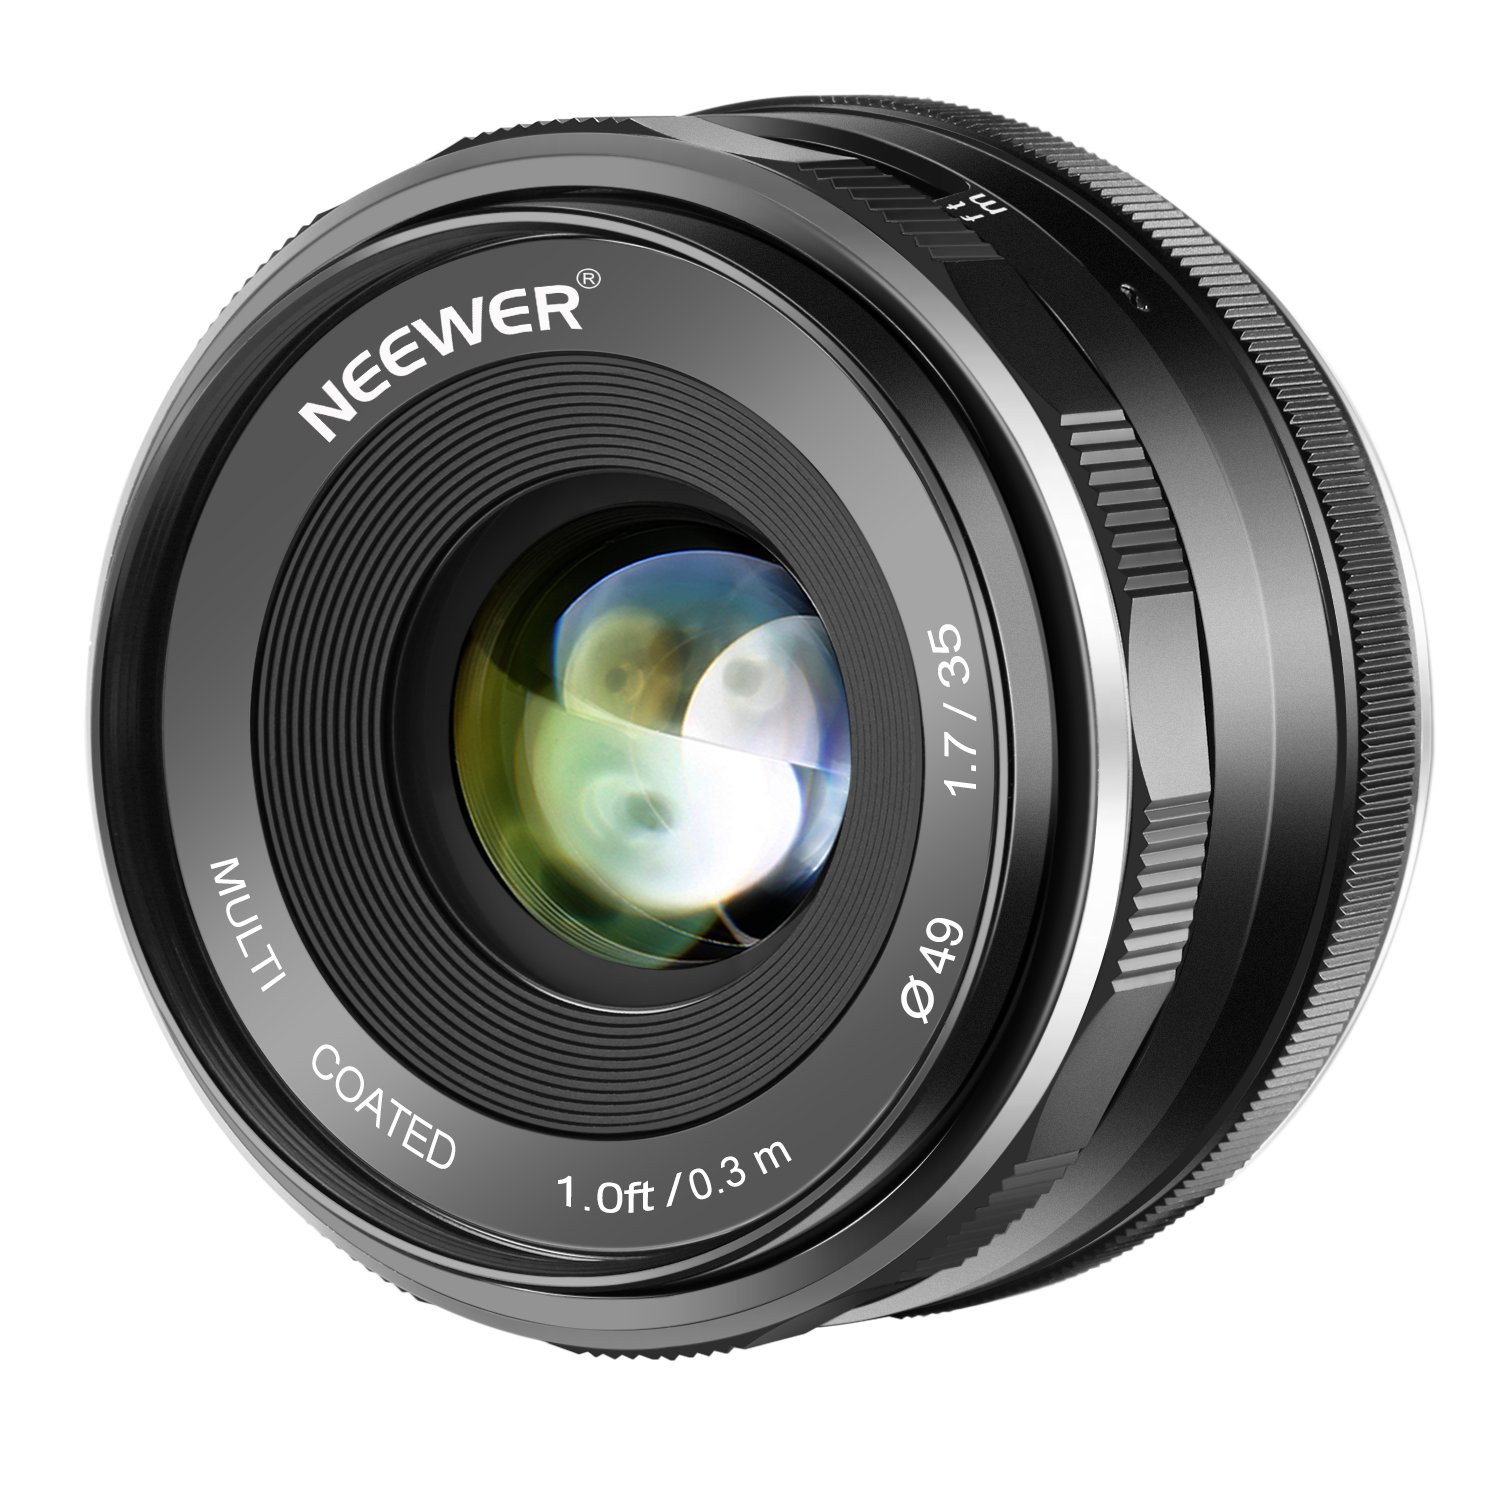 Neewer 35mm F/1.7 Large Aperture HD MC Manual Prime Fixed Lens APS-C for Canon EF-M Mount Lens EOS M Series Mirrorless Cameras M100/M10/M6/M5/M3/M2 by Neewer